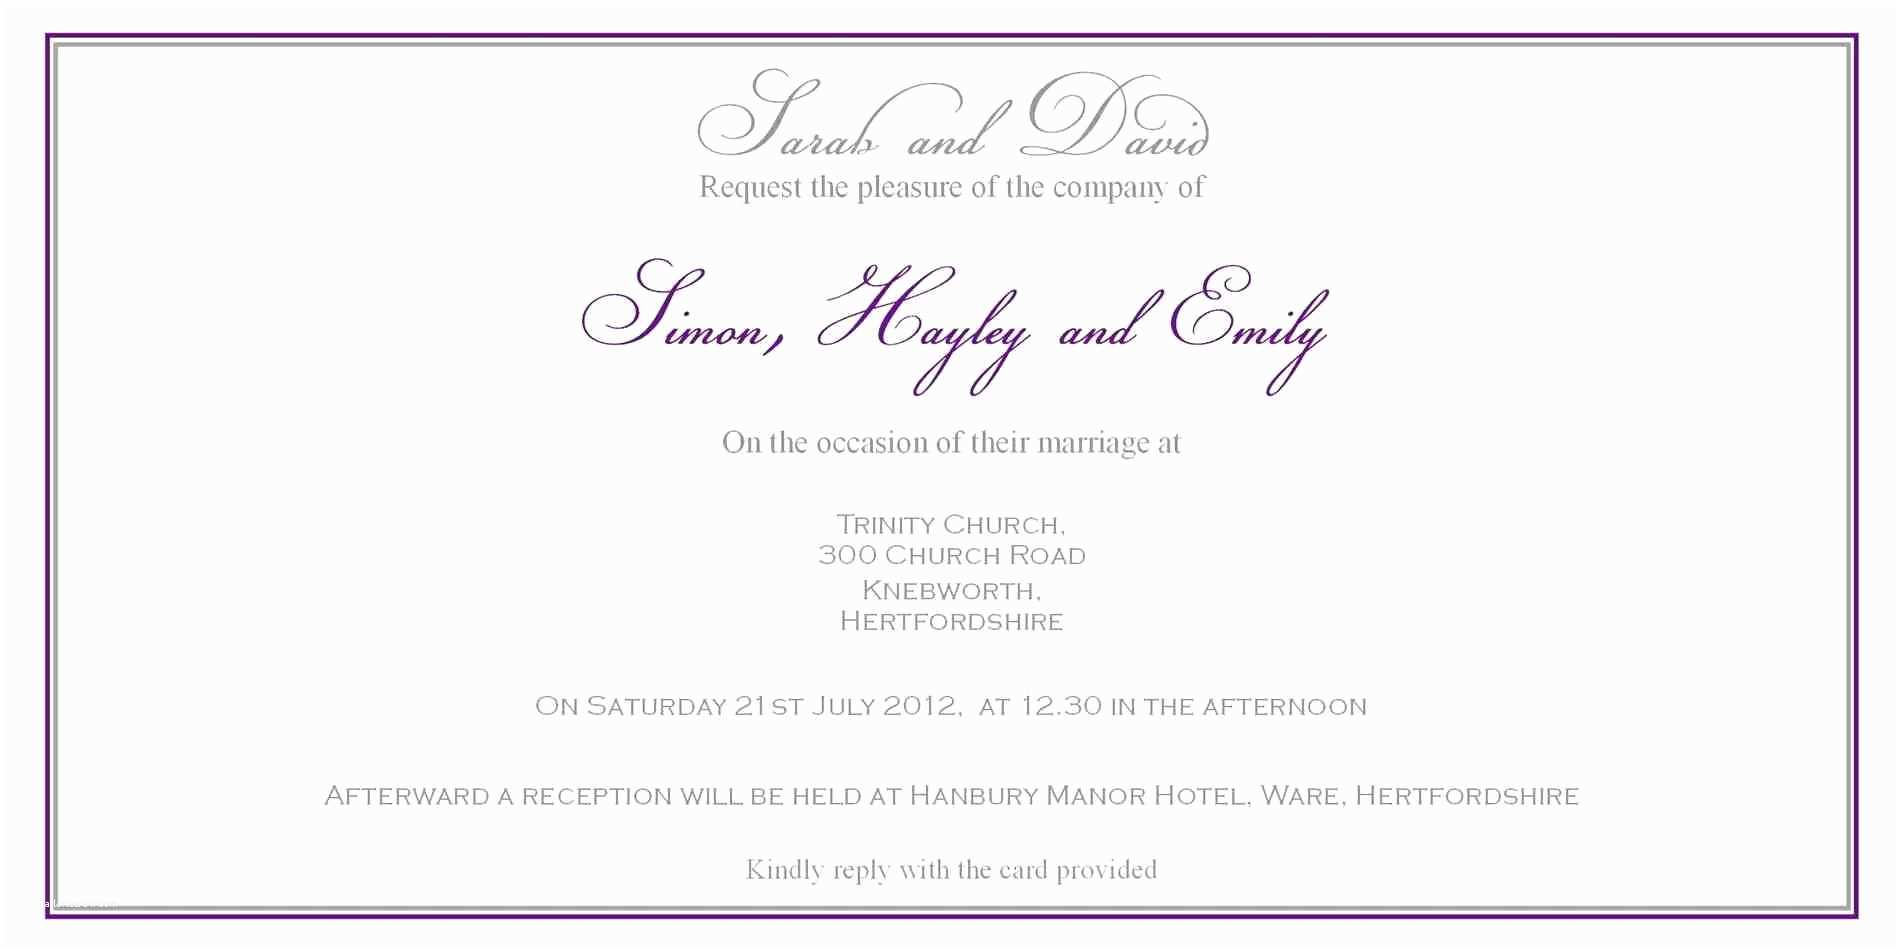 Wedding Invitation Both Parents Wording Samples Wedding Invitation Samples Couple Hosting Both Parents and